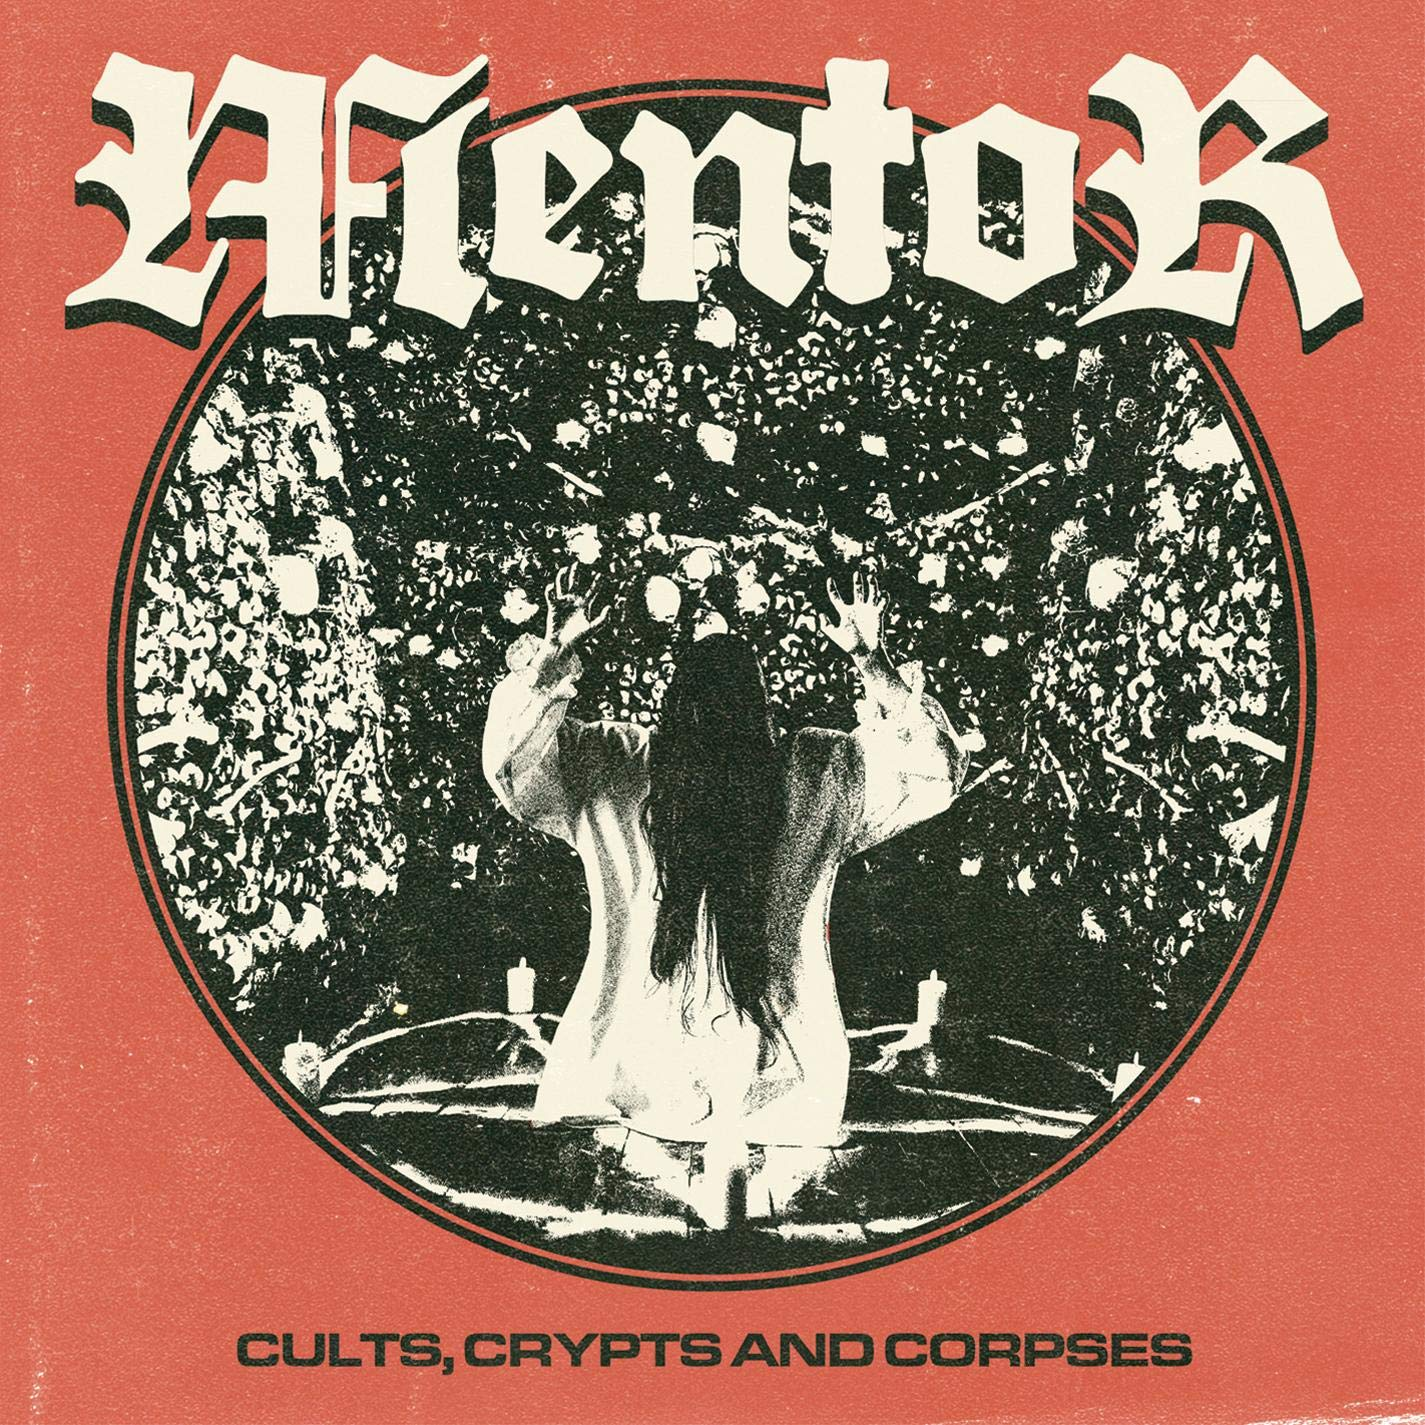 Mentor - Cults, Crypts and Corpses (2018) [FLAC] Download